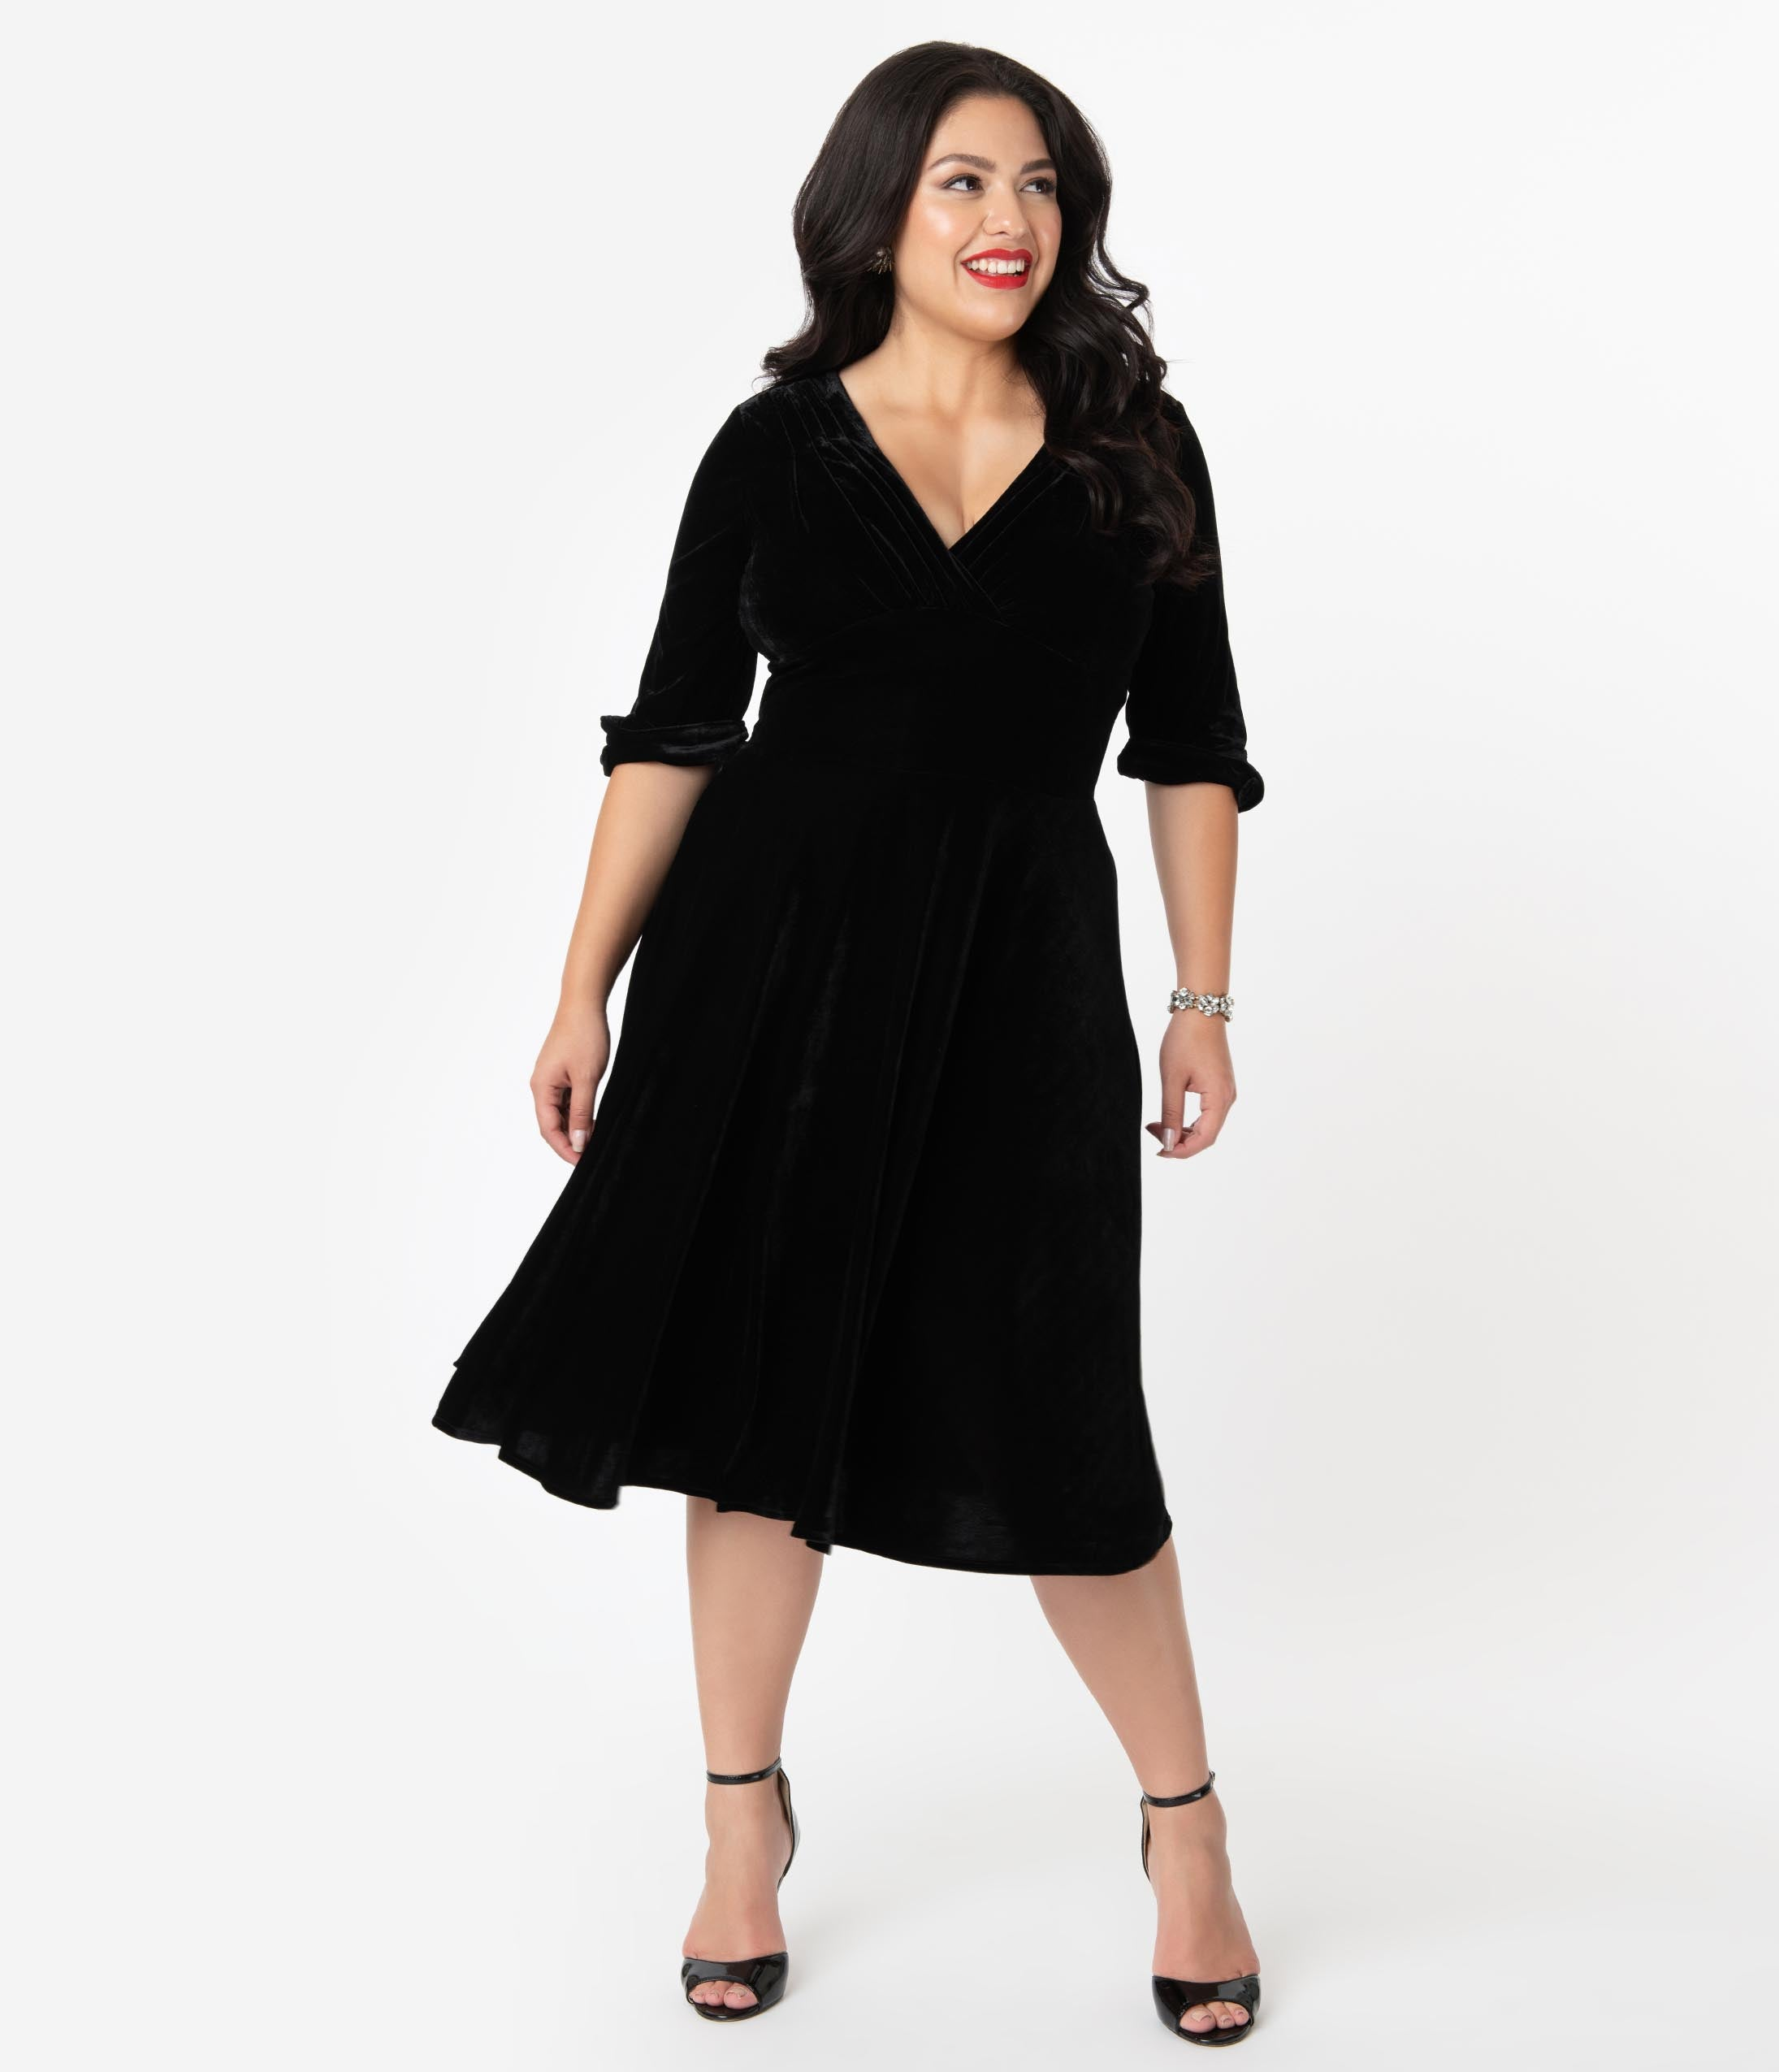 What Did Women Wear in the 1950s? 1950s Fashion Guide Unique Vintage Plus Size 1950S Black Velvet Delores Swing Dress With Sleeves $98.00 AT vintagedancer.com